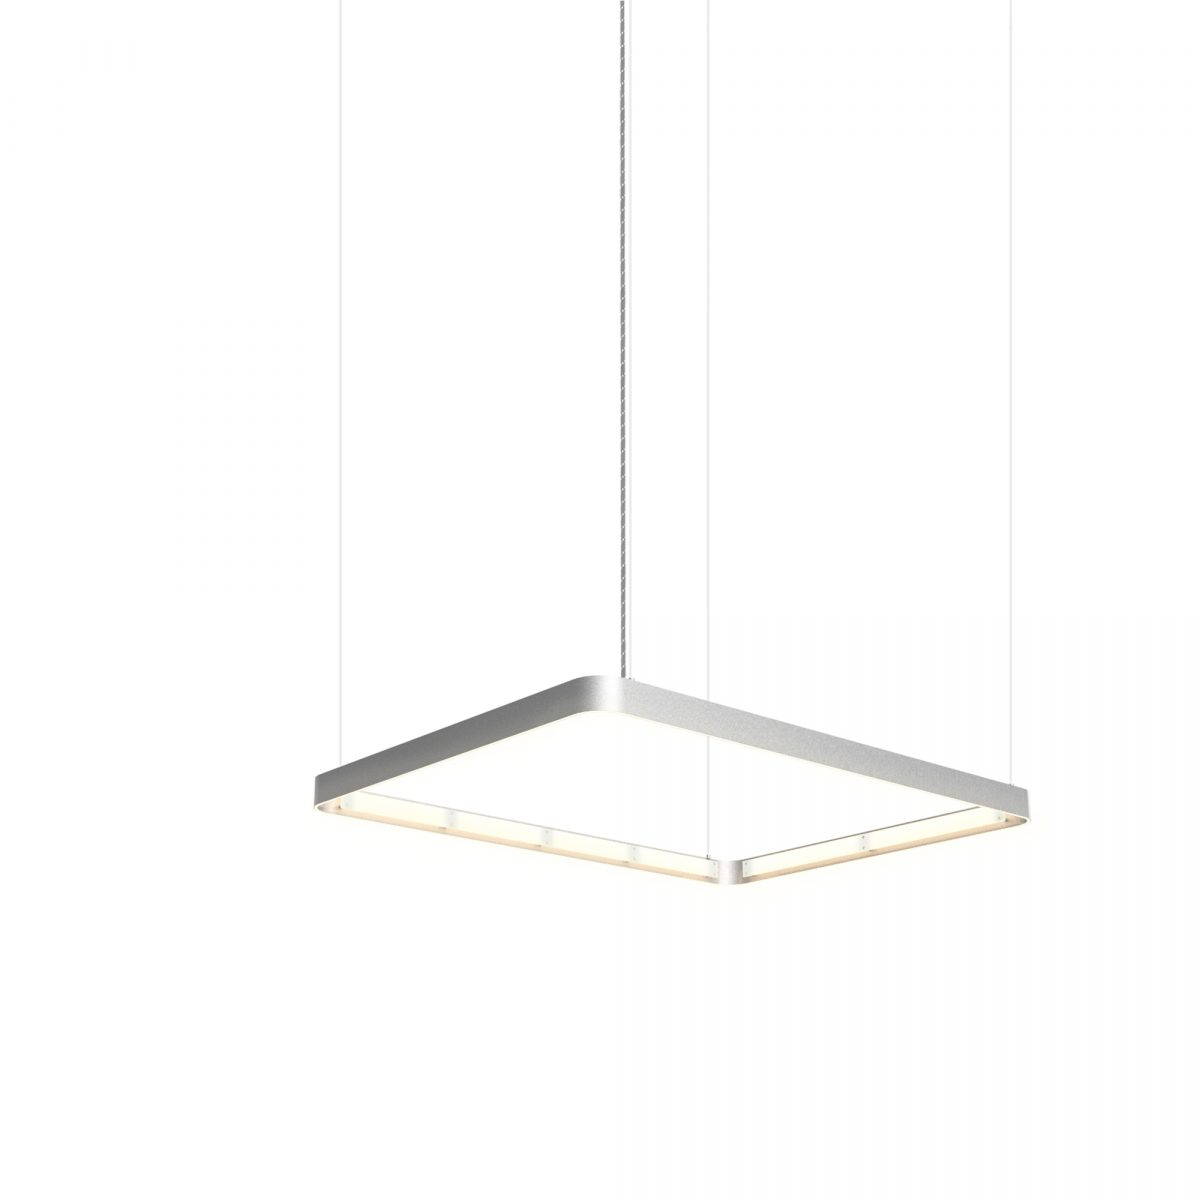 JSPR Eden Deco 75×100 Silver Rectangle